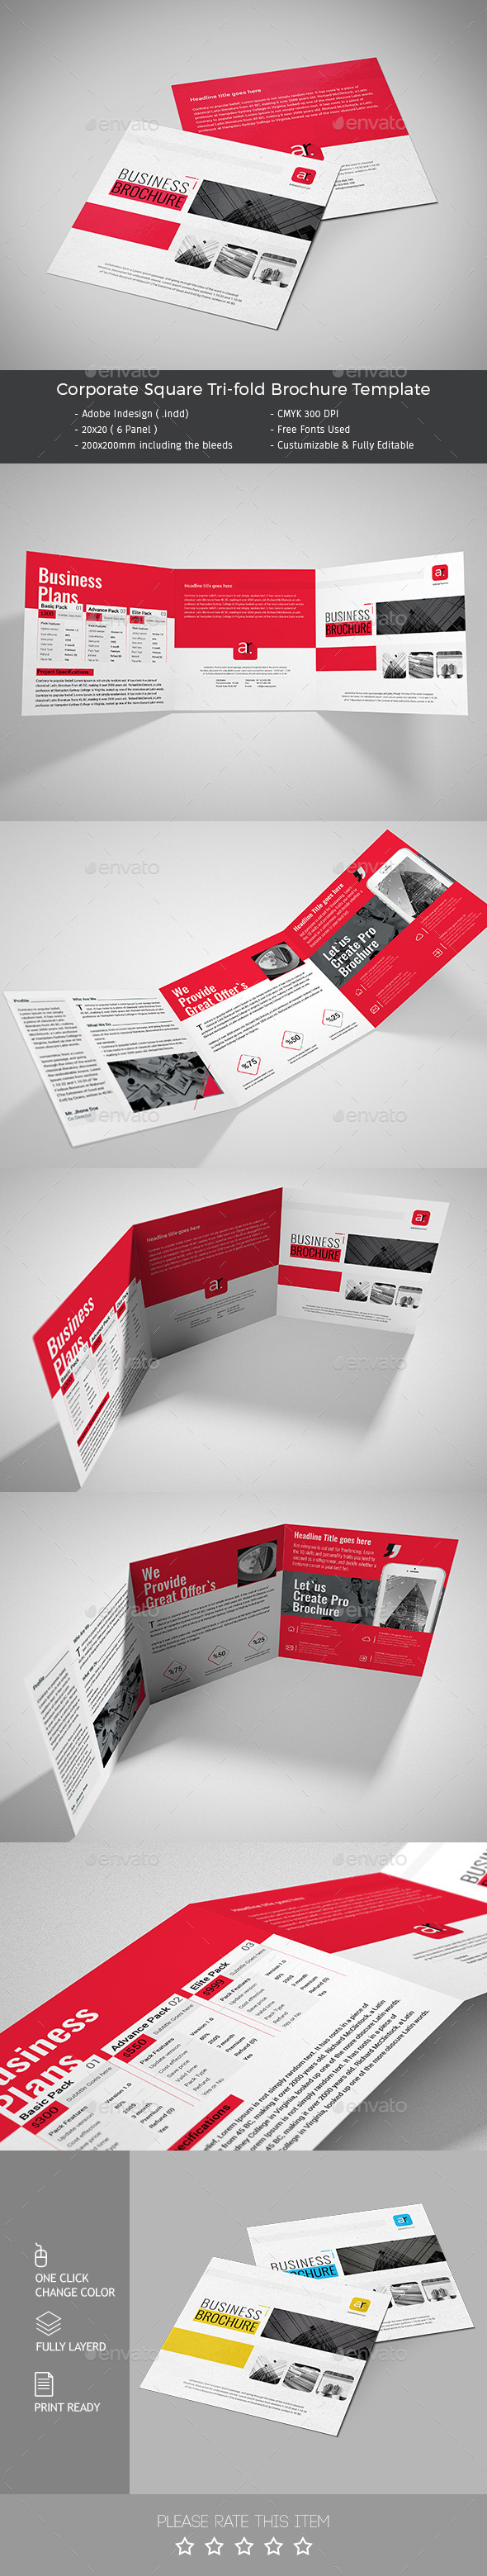 Corporate Square Trifold Brochure Template PSD Design Download - Tri fold brochure template psd